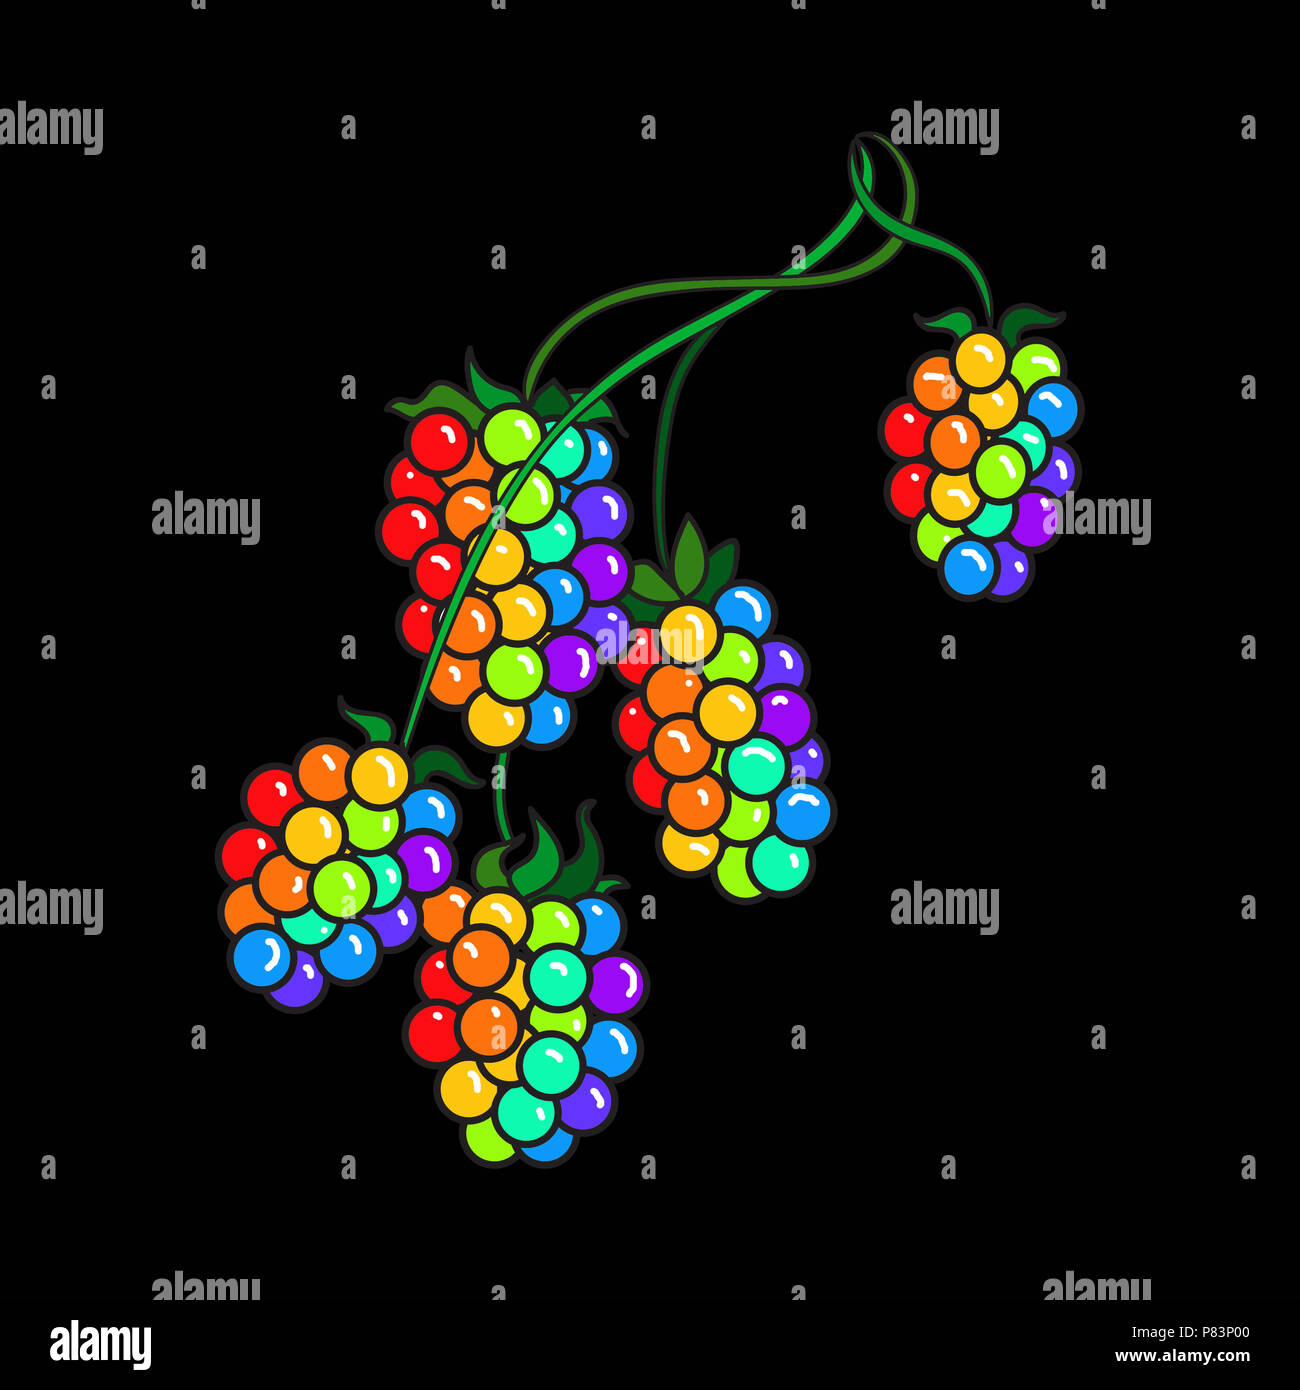 Illustration of raspberries on the stem in rainbow colors against a black background. - Stock Image